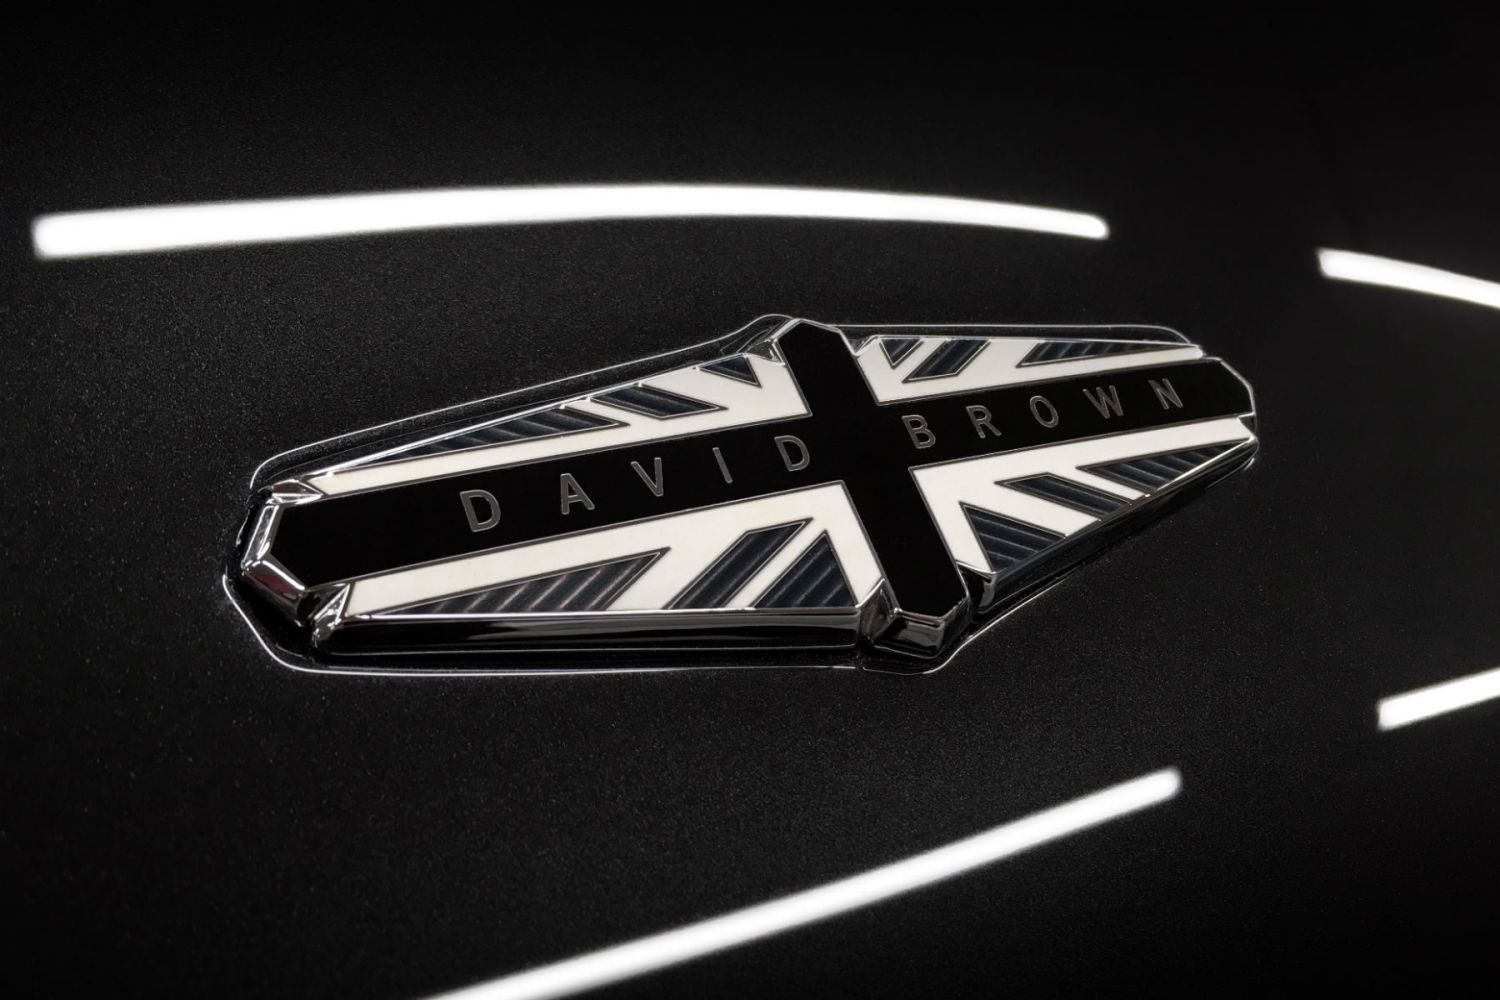 David Brown Automotive set to reveal another retro remake